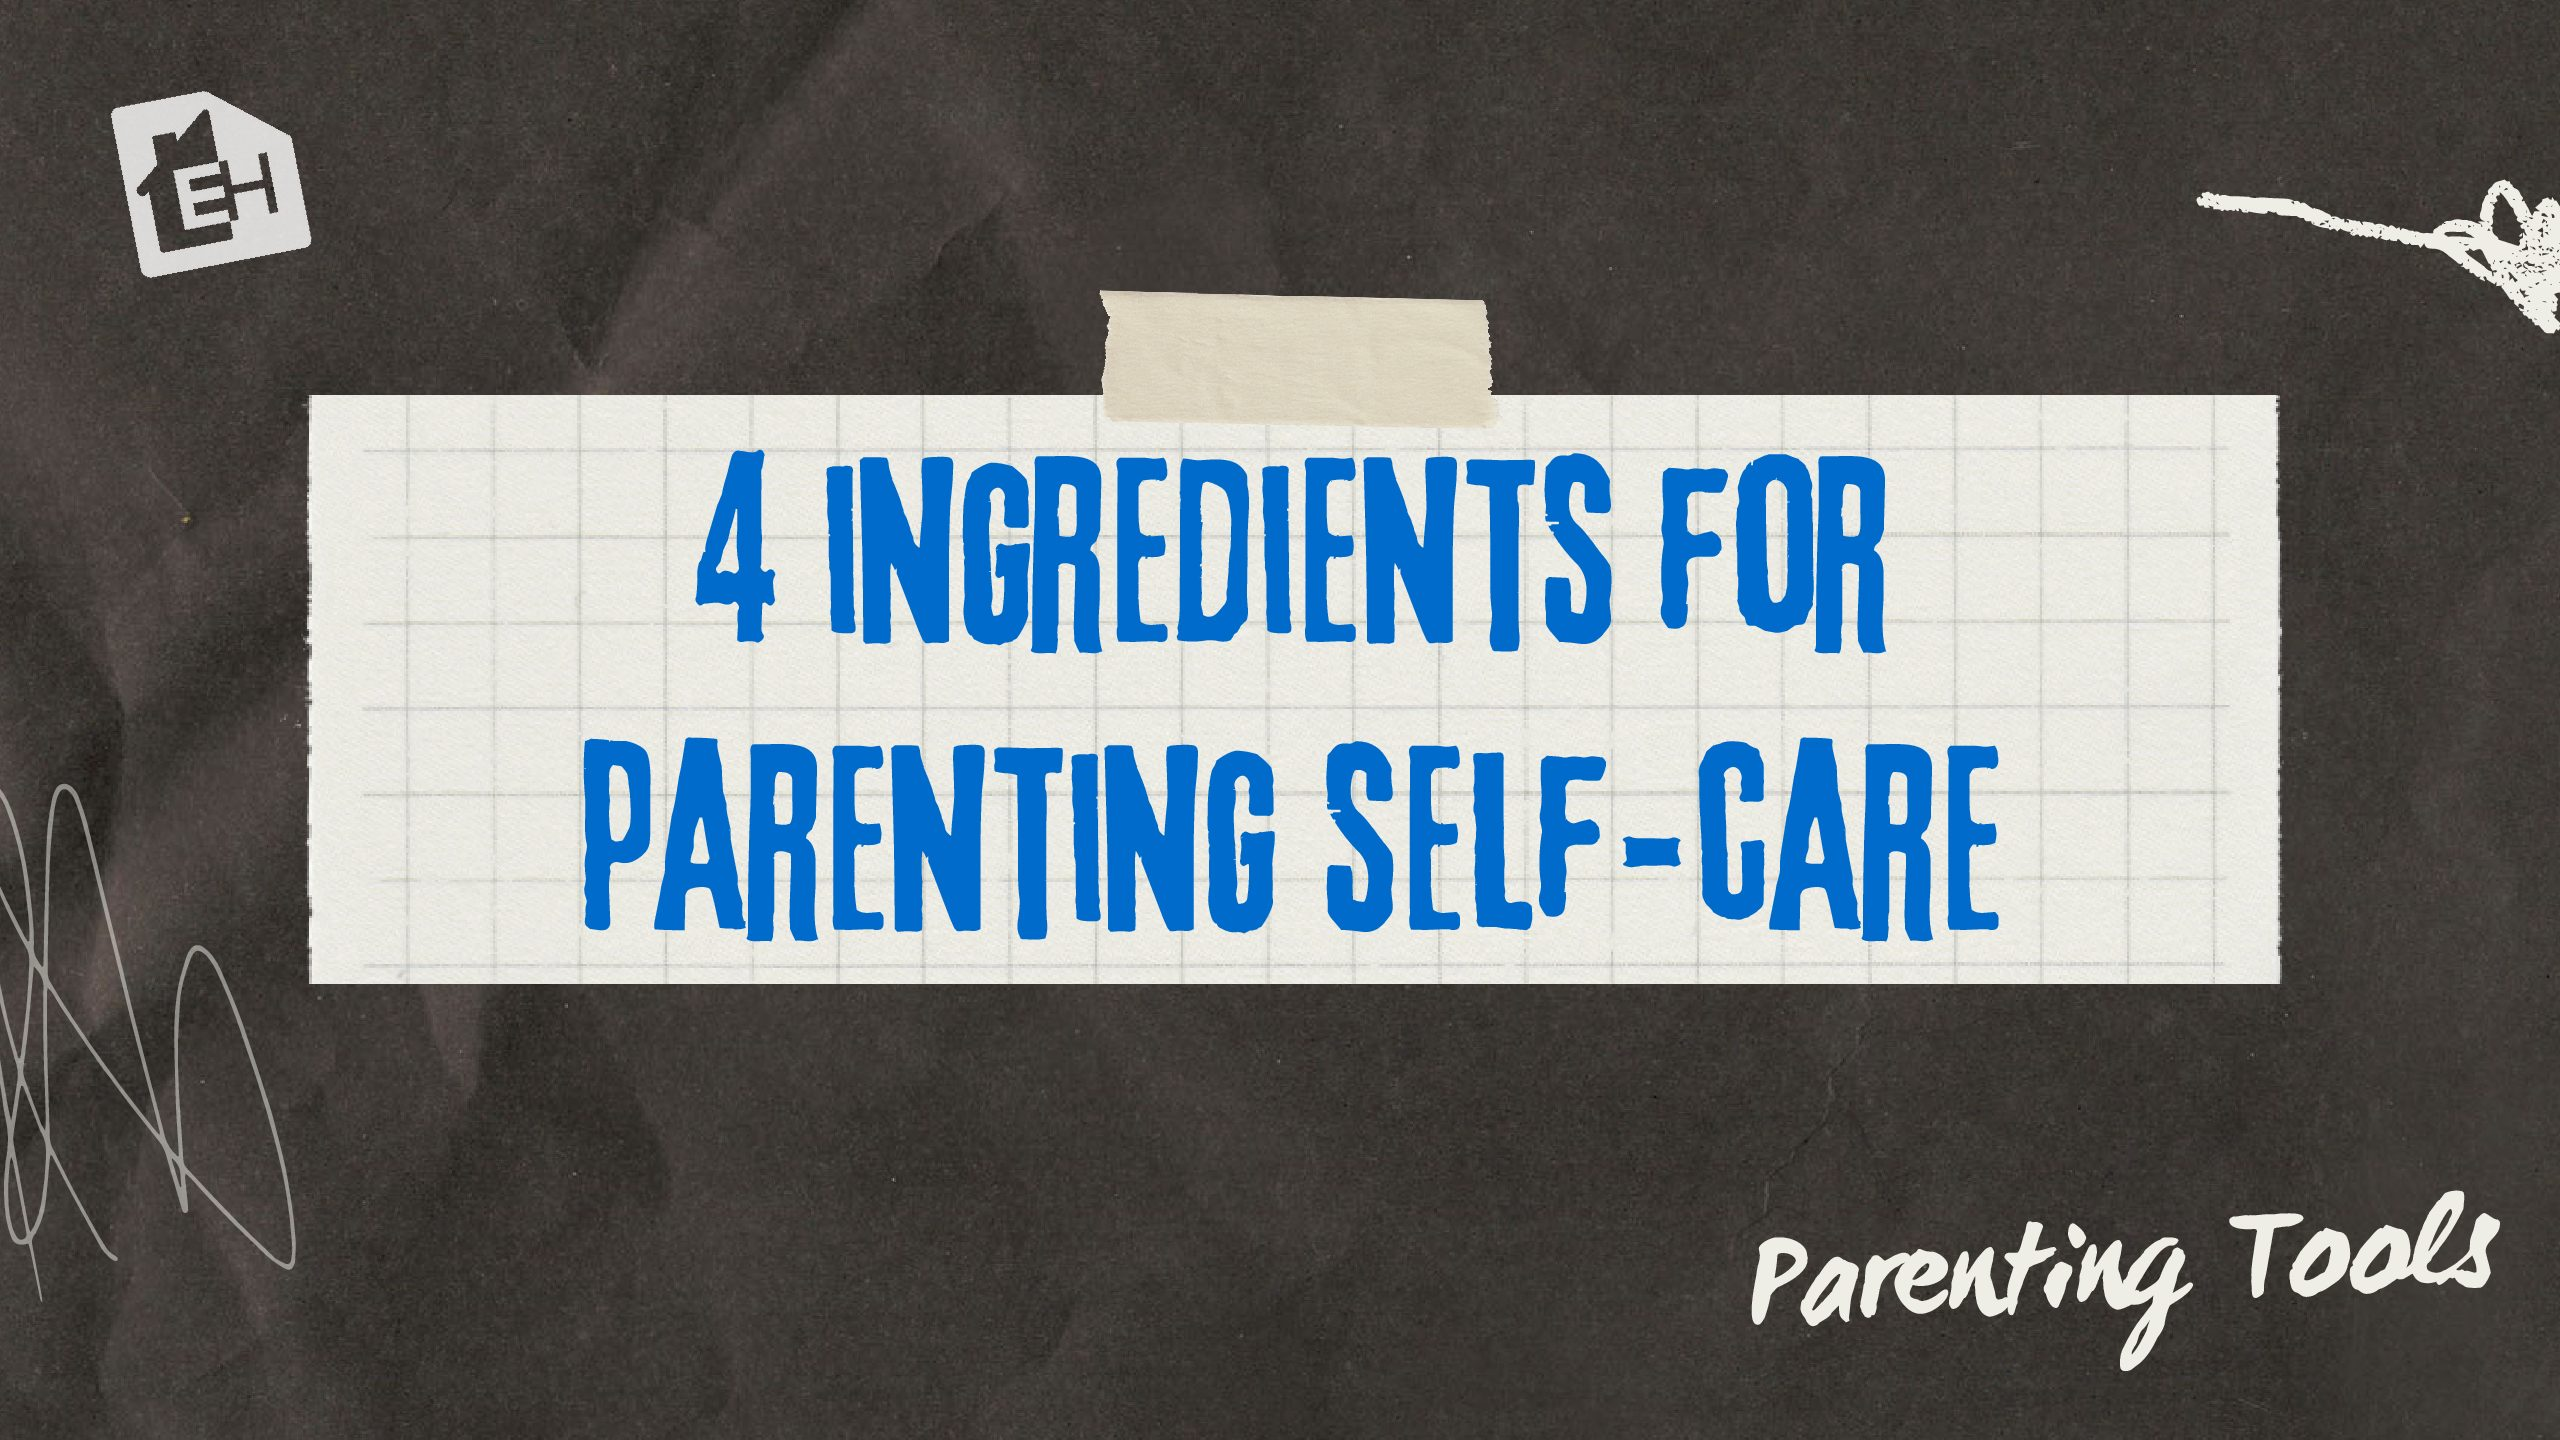 4 Ingredients for Parenting Self-Care